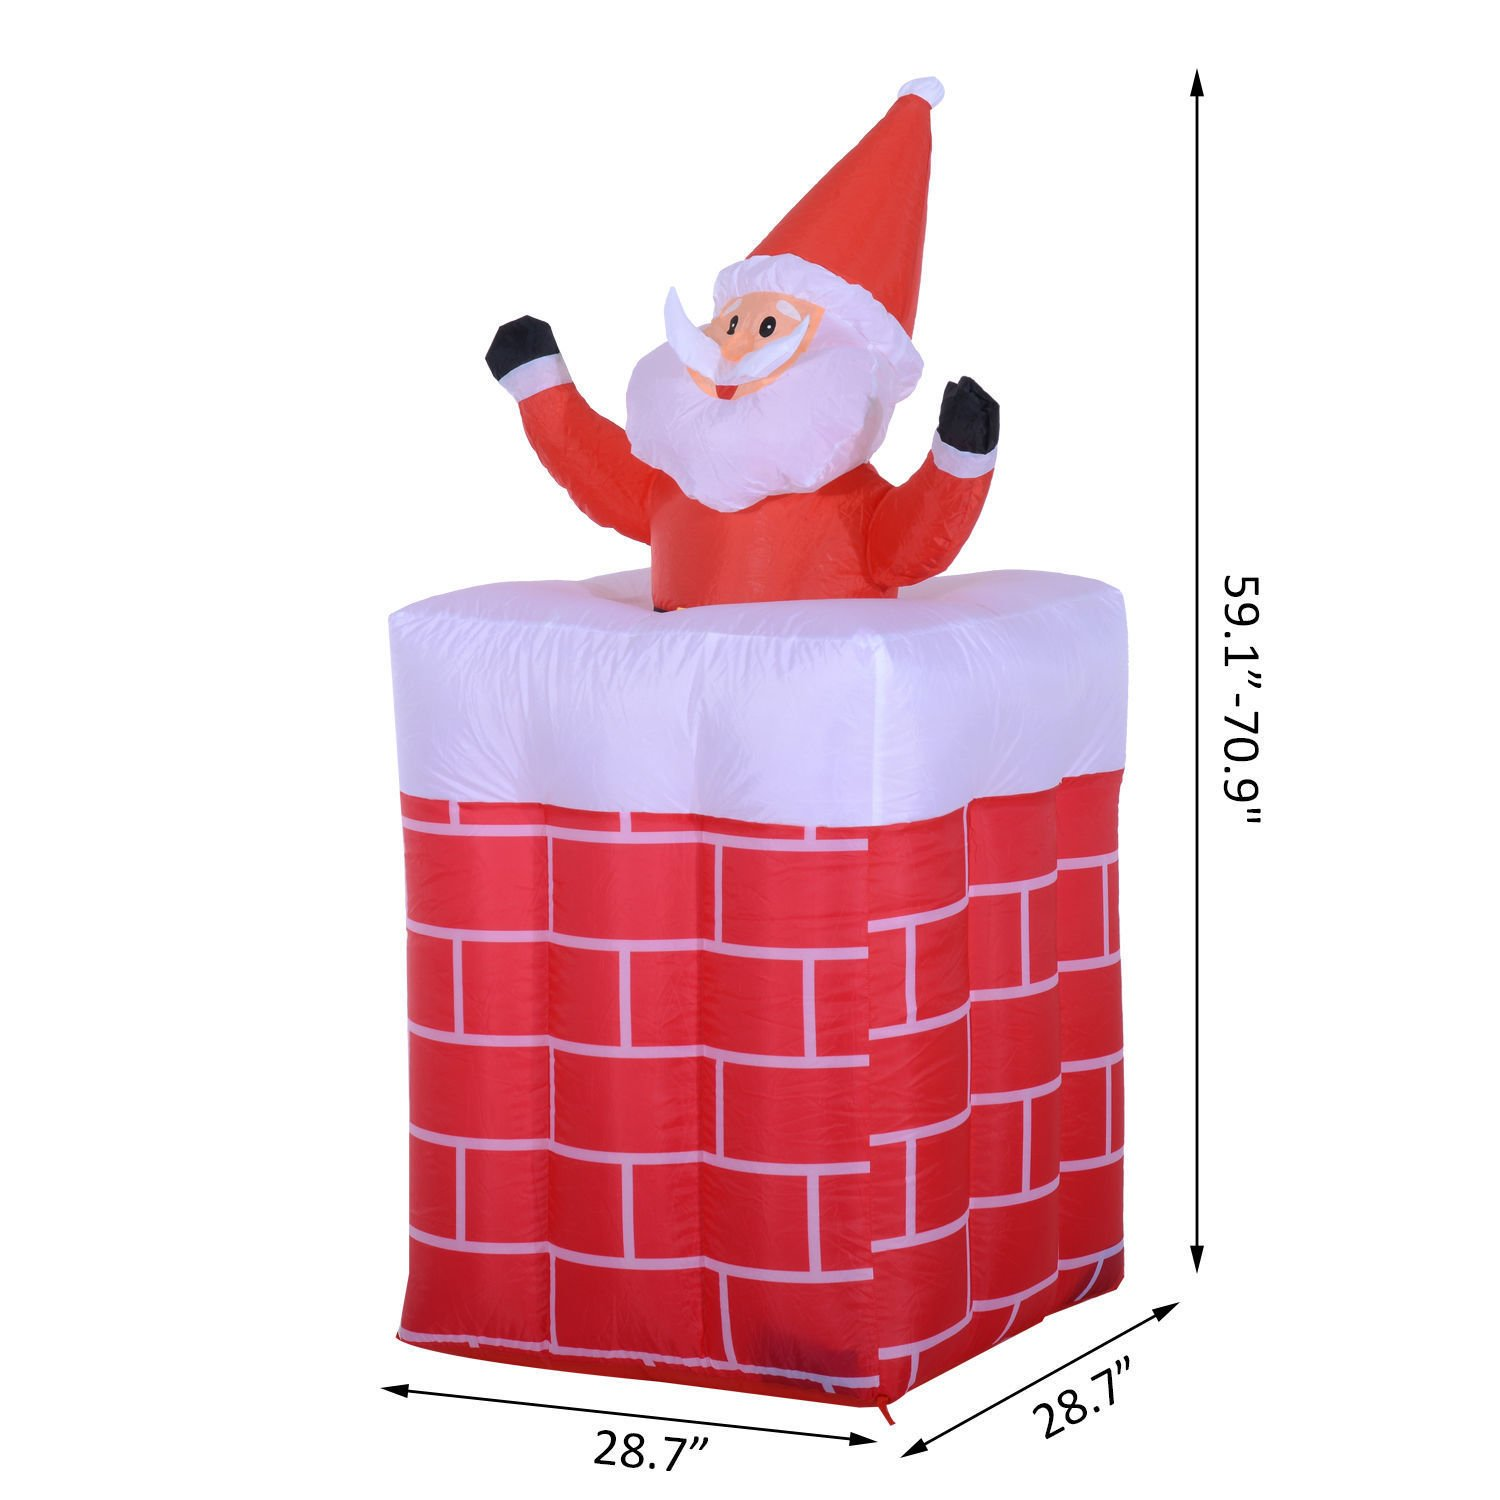 6ft Inflatable Santa Claus Rising in Chimney Christmas Lighted Yard Décor Guaranteed Quality